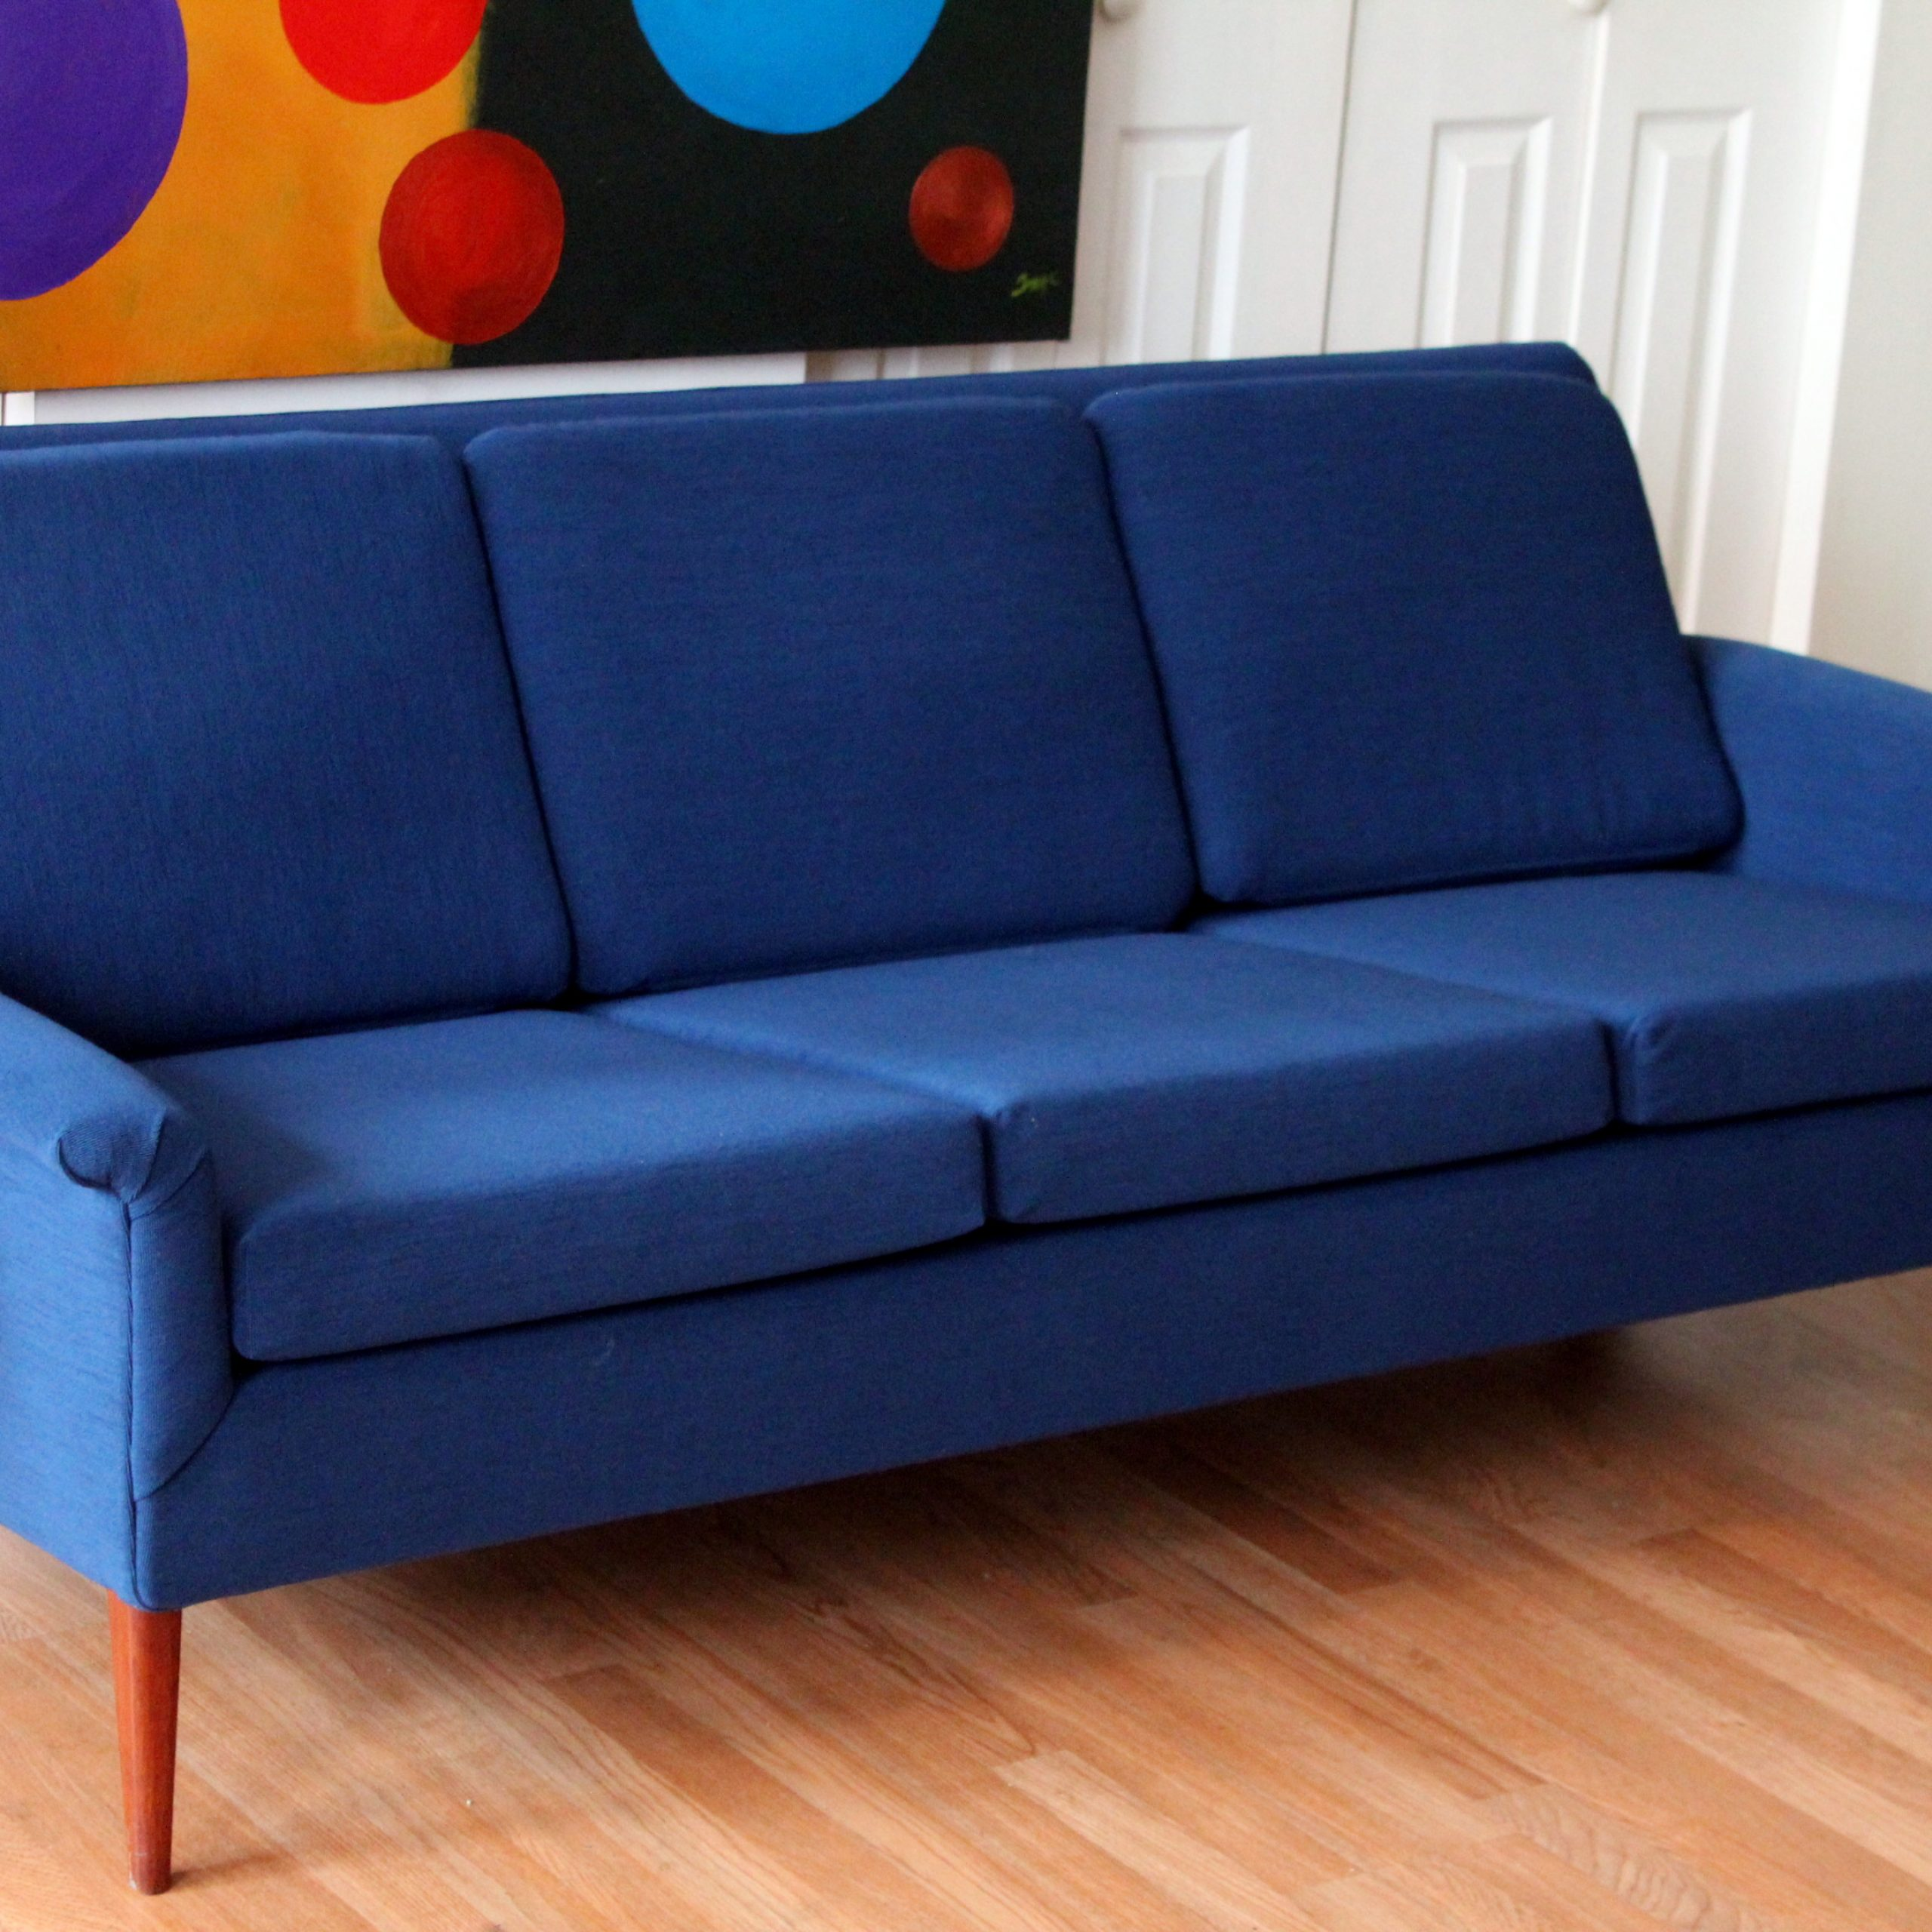 Folke Ohlsson Dux Mid Century Modern Three Seat Sofa | An For Retro Sofas And Chairs (View 11 of 15)